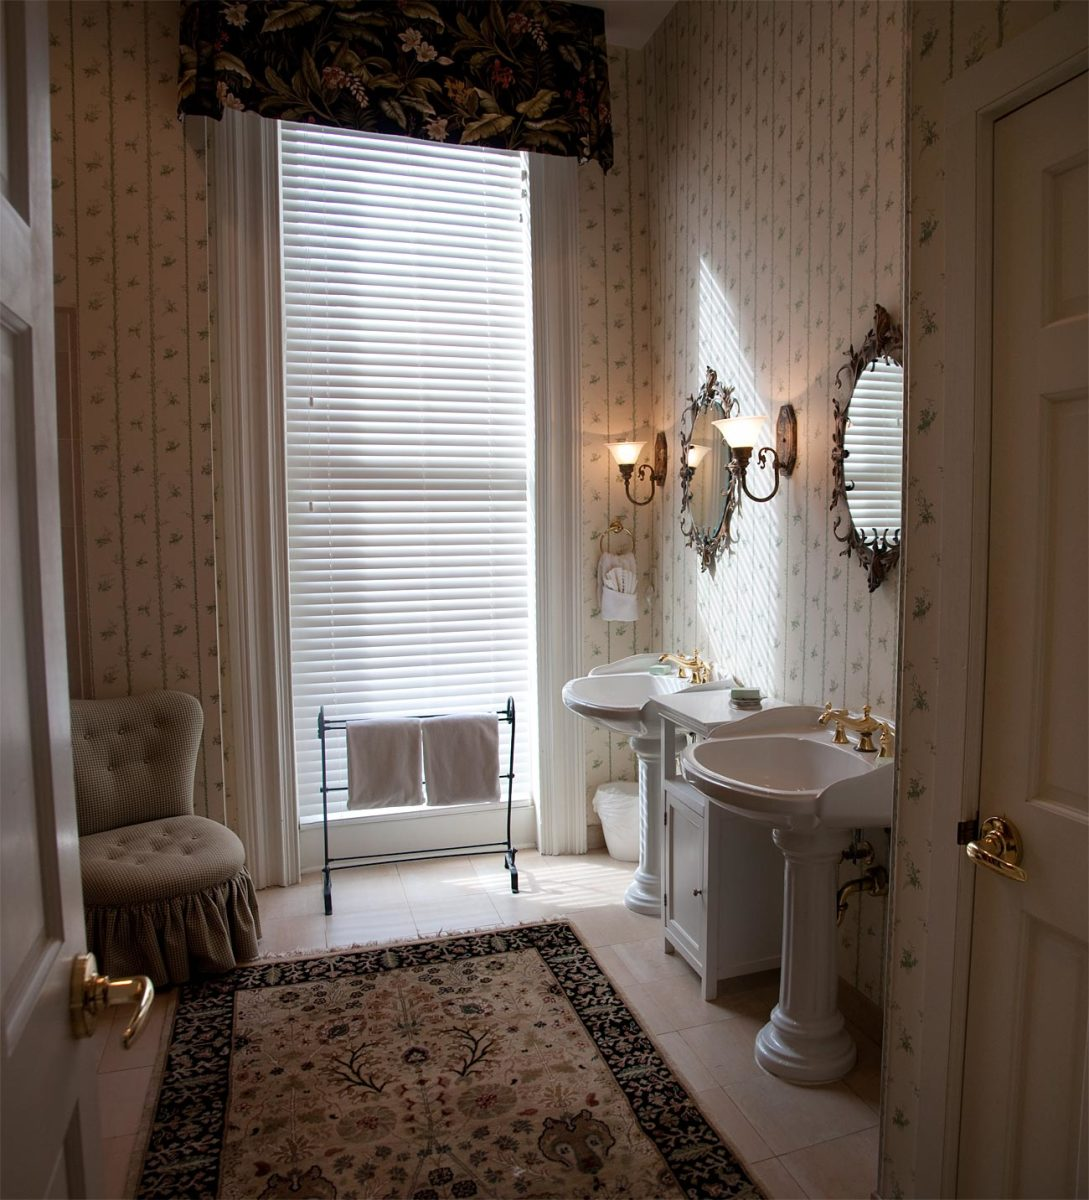 You've spent a ton of money decorating your bathroom, naturally you'll want it to smell as good as it looks!